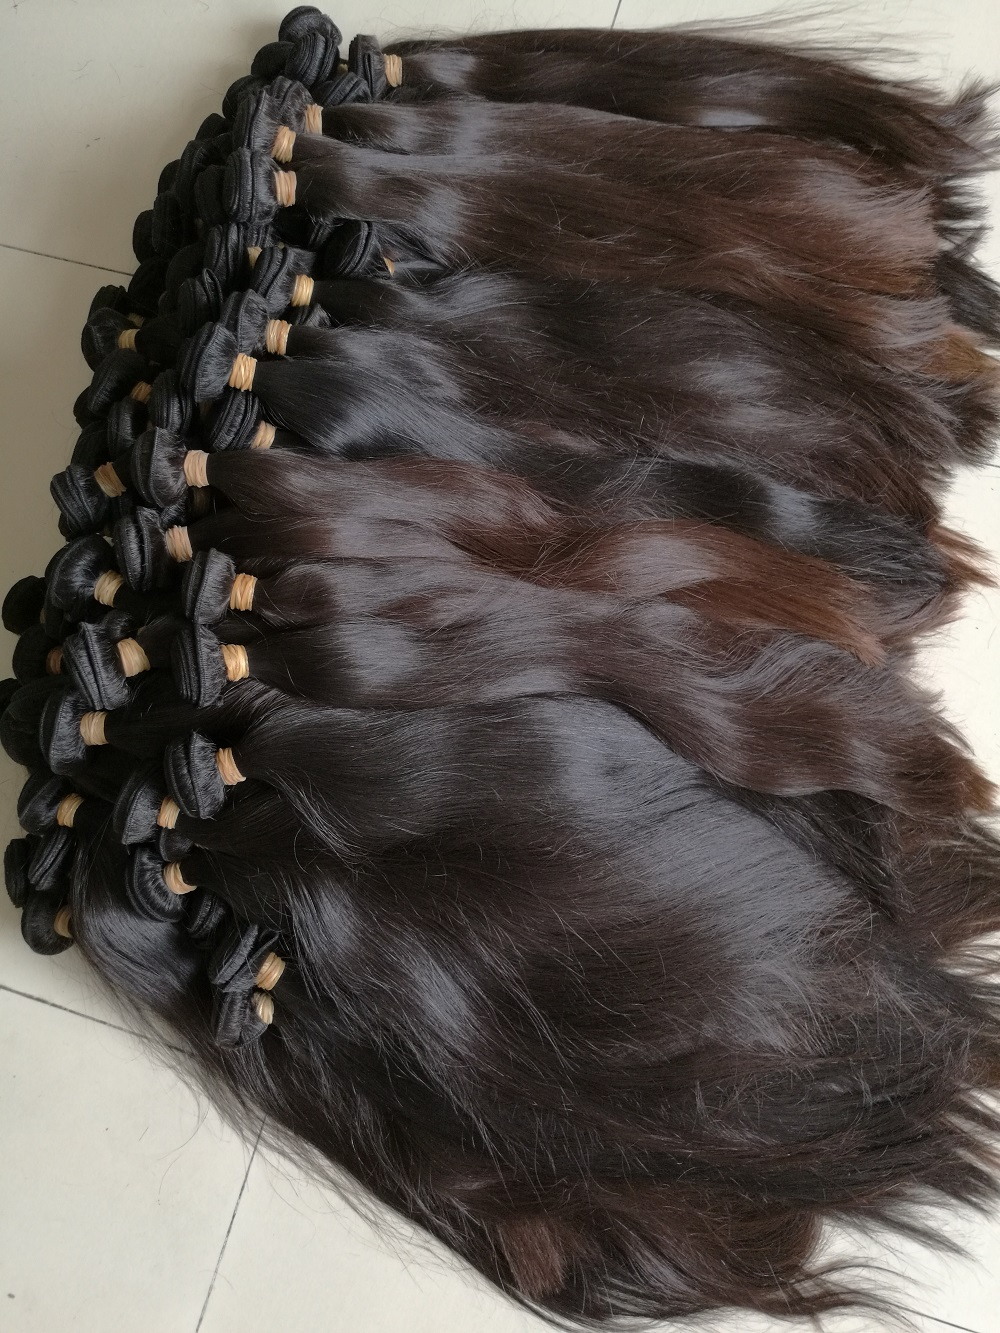 Raw Cambodian virgin hair unprocessed vendor wholesale, Burmese curly raw human hair, cuticle aligned raw Vietnamese hair